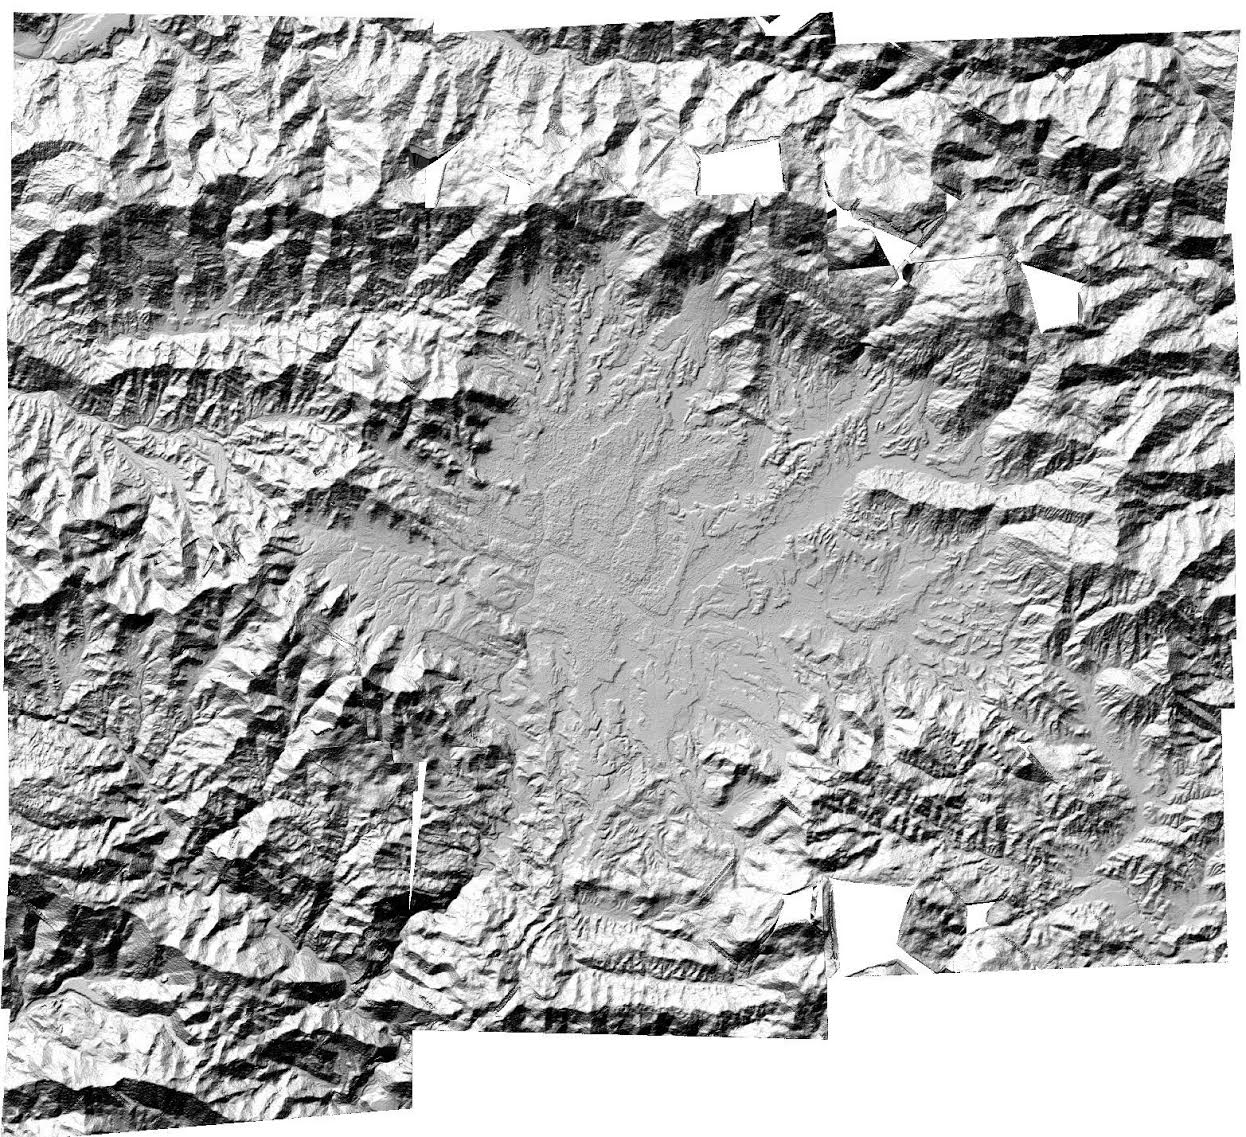 Satellite imagery of Nepal